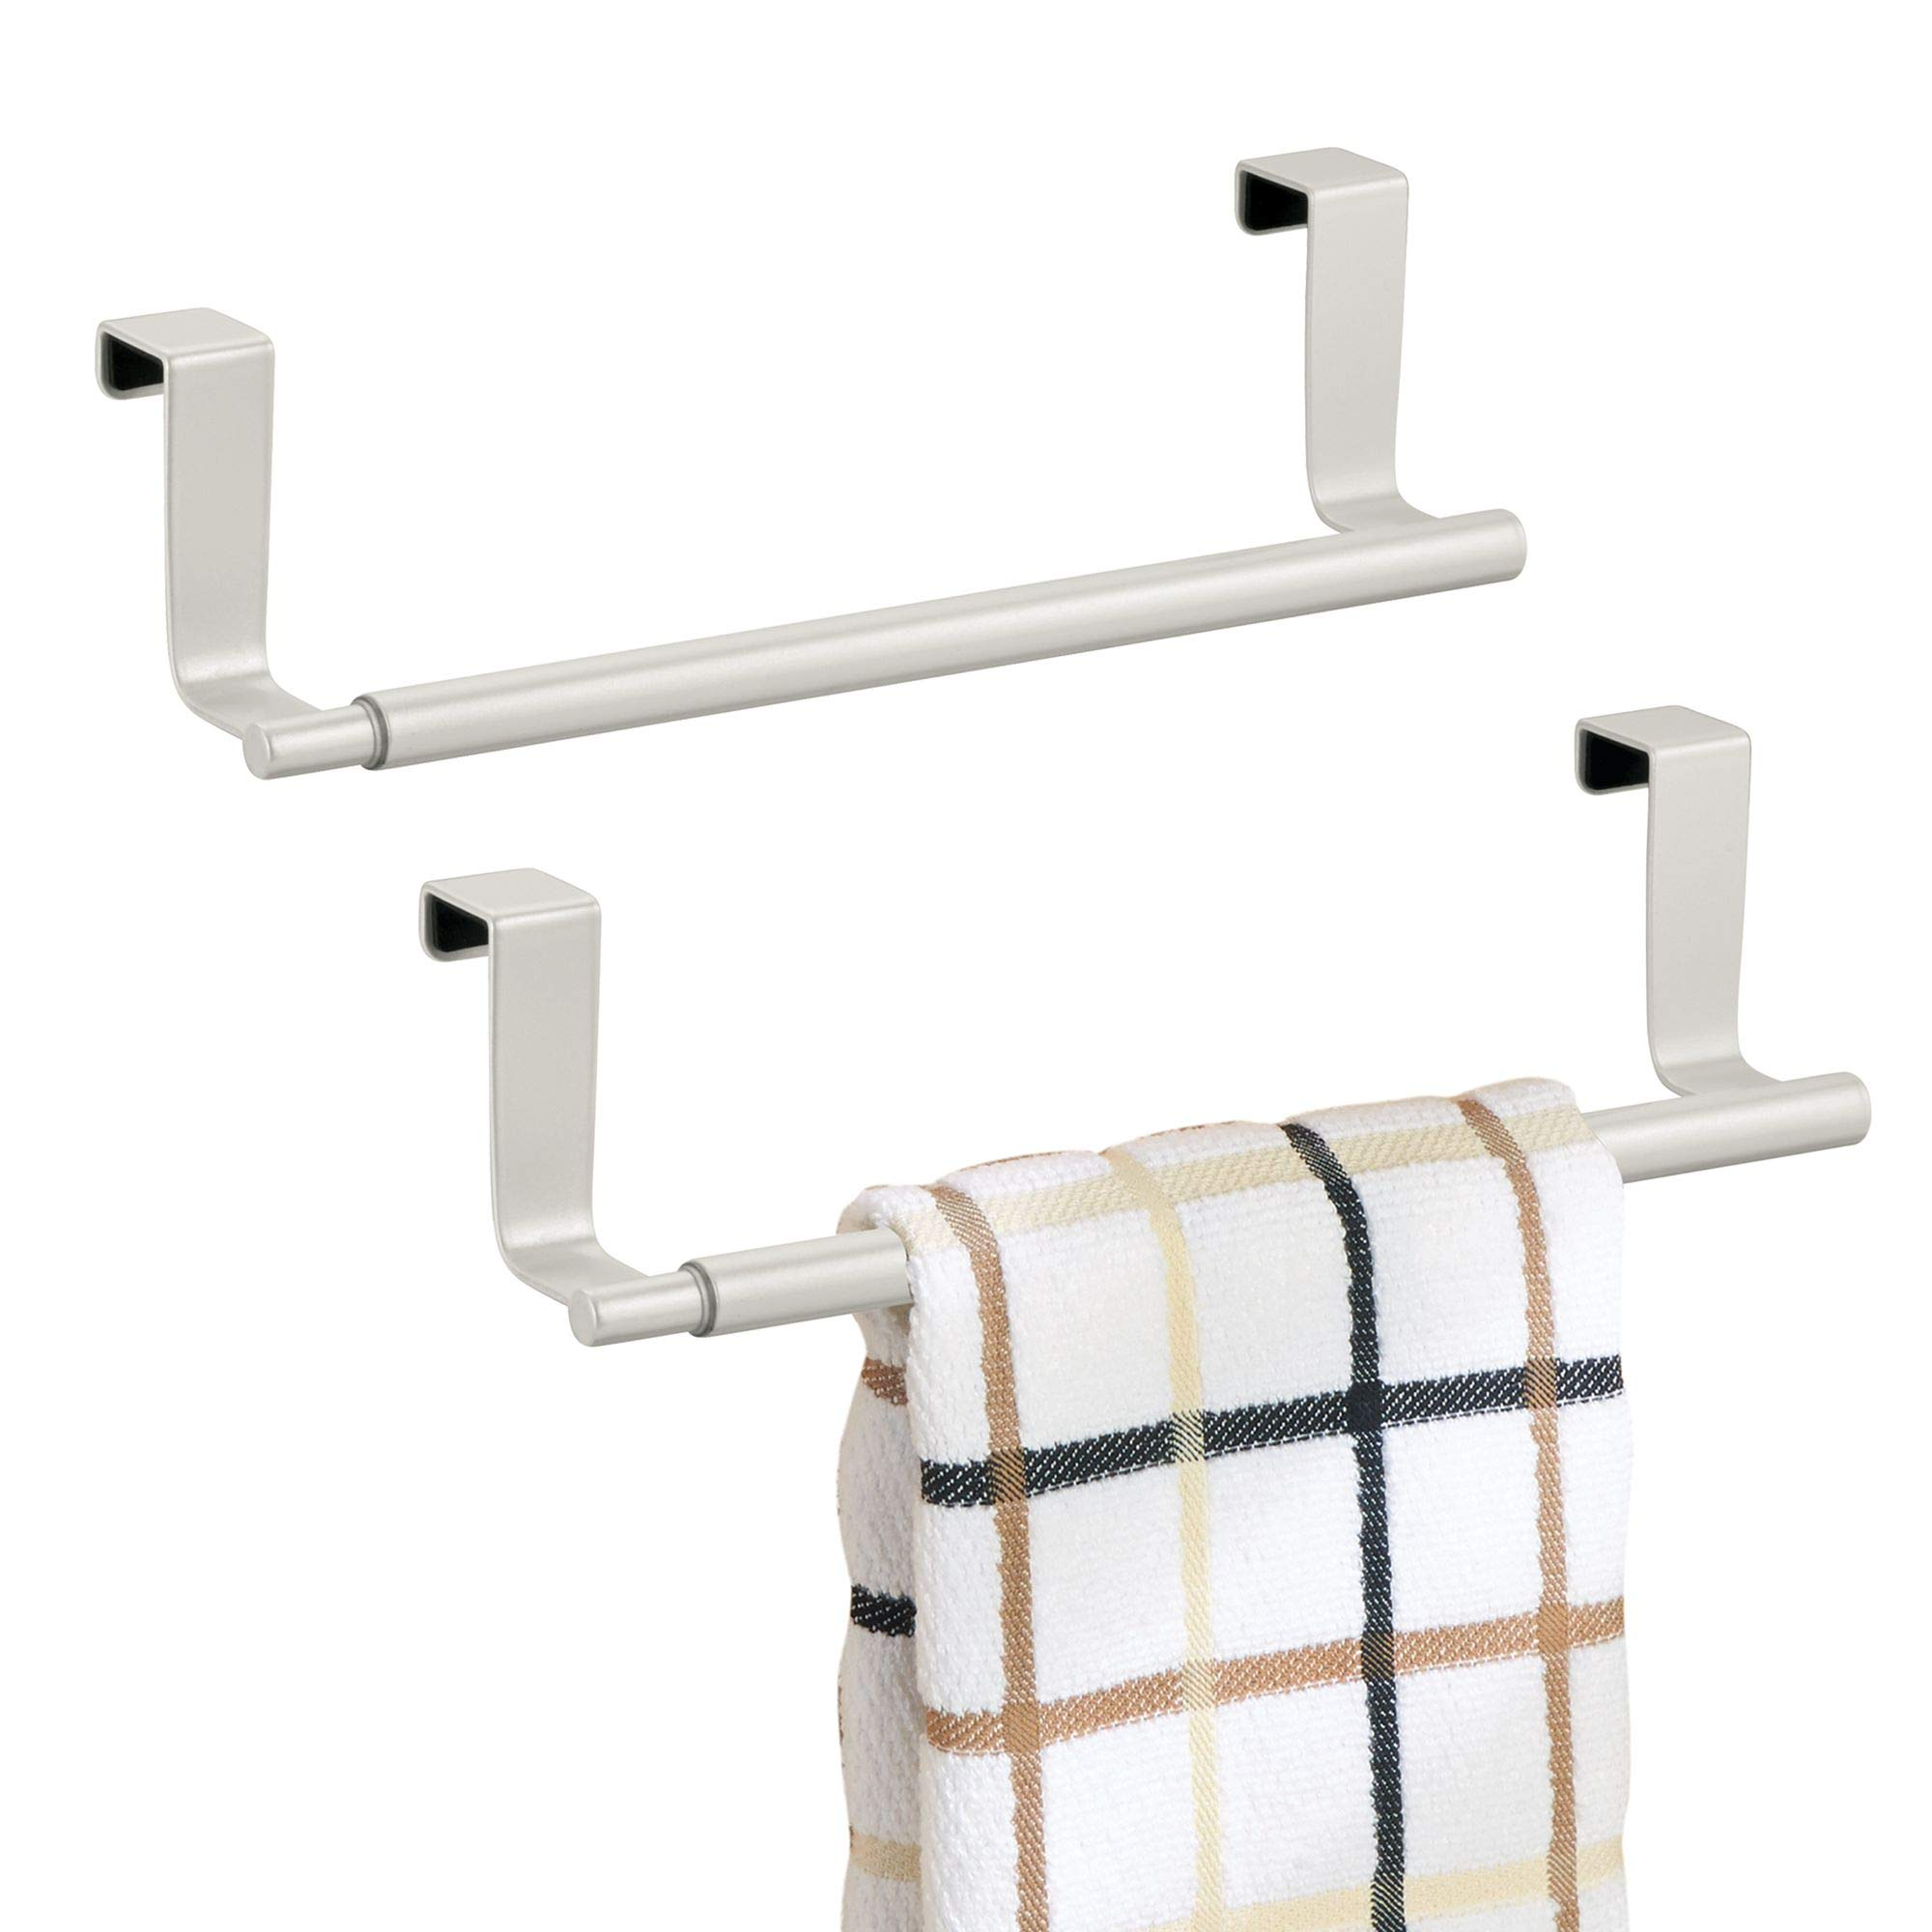 mDesign Adjustable, Expandable Kitchen Over Cabinet Towel Bar Rack - Hang on Inside or Outside of Doors, Storage for Hand, Dish, Tea Towels - 9.25'' to 17'' Wide, 2 Pack, Pearl White